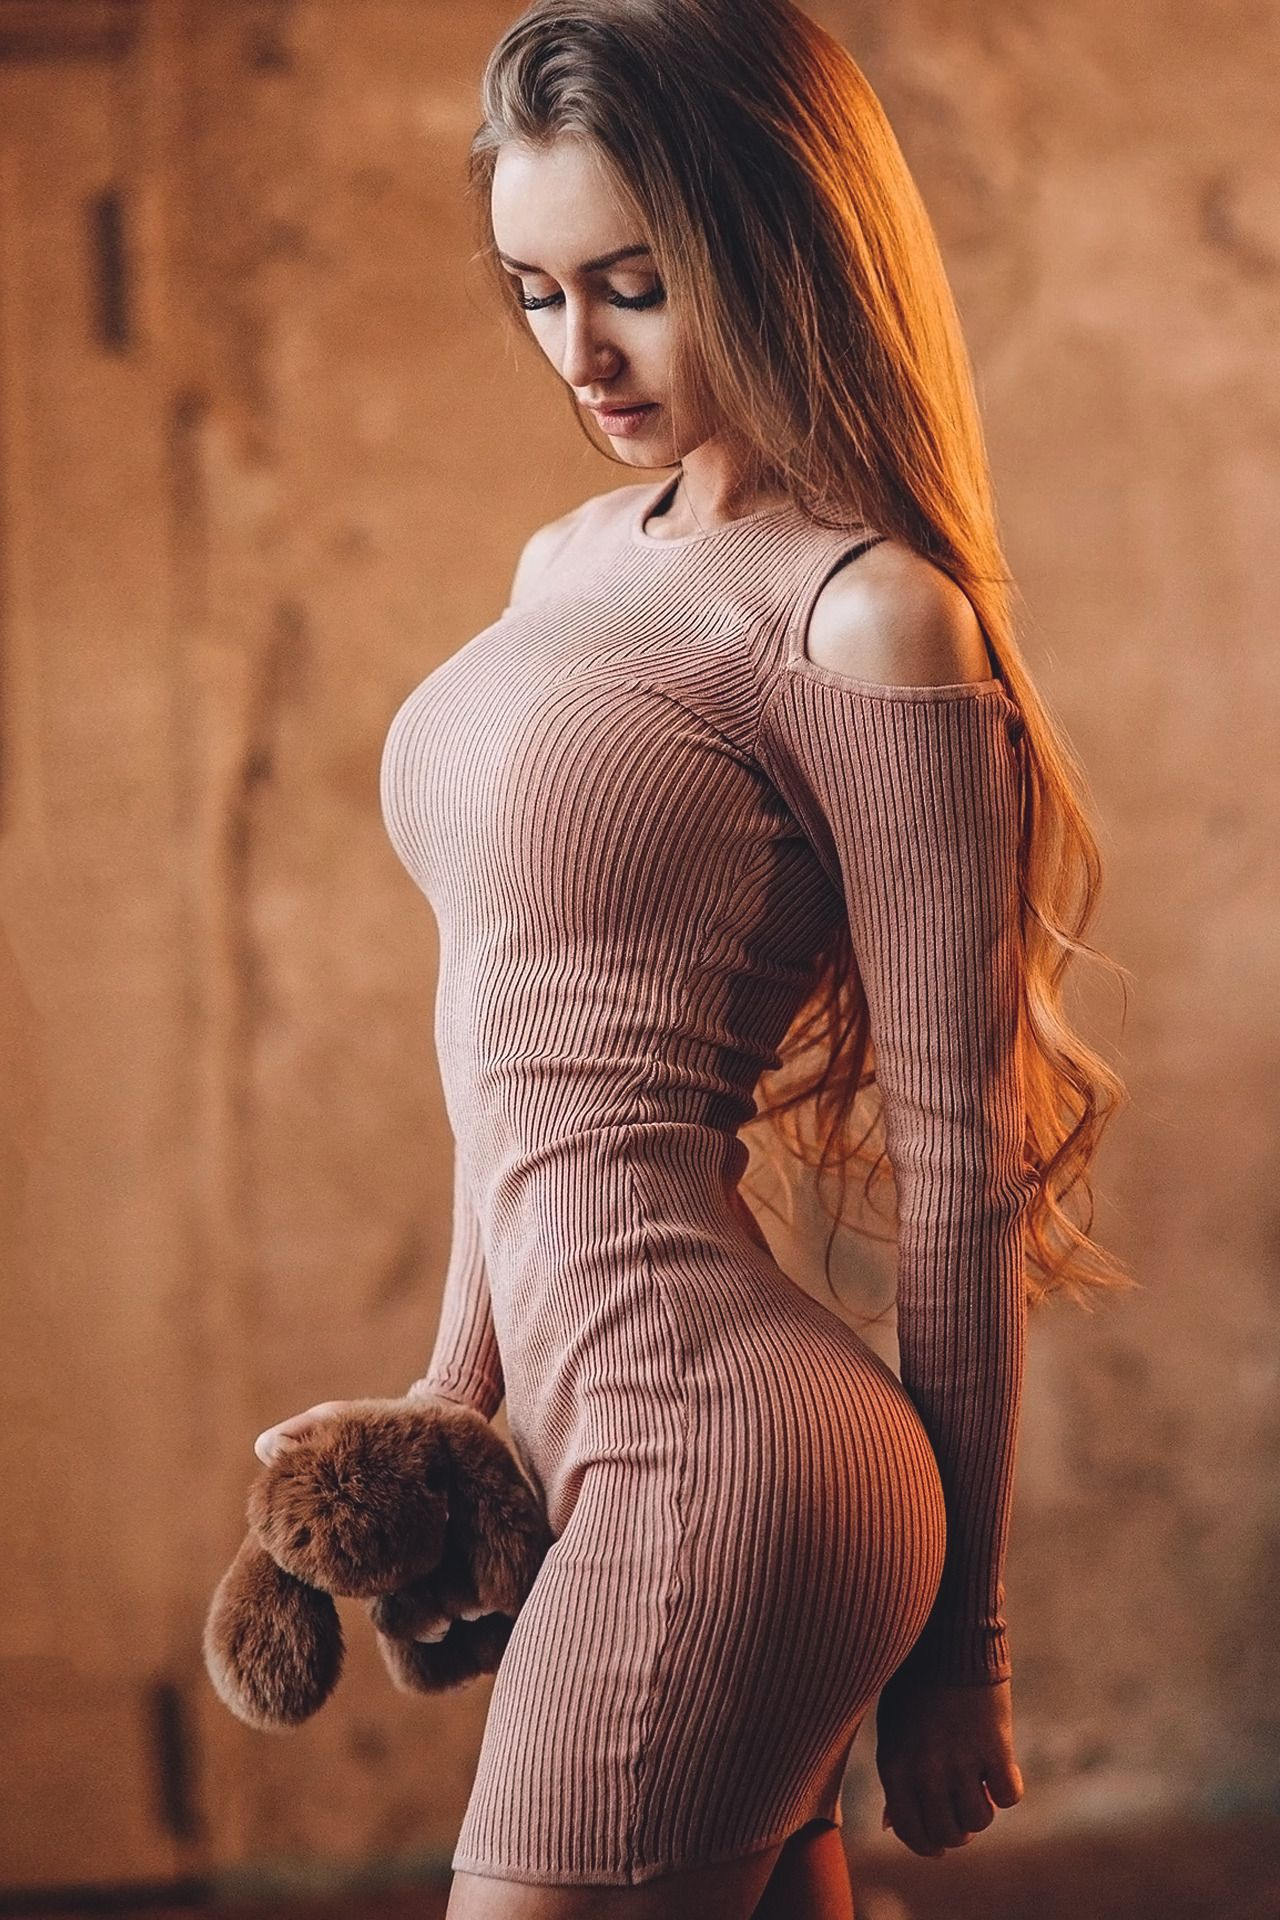 women-in-tight-fitting-clothes-nude